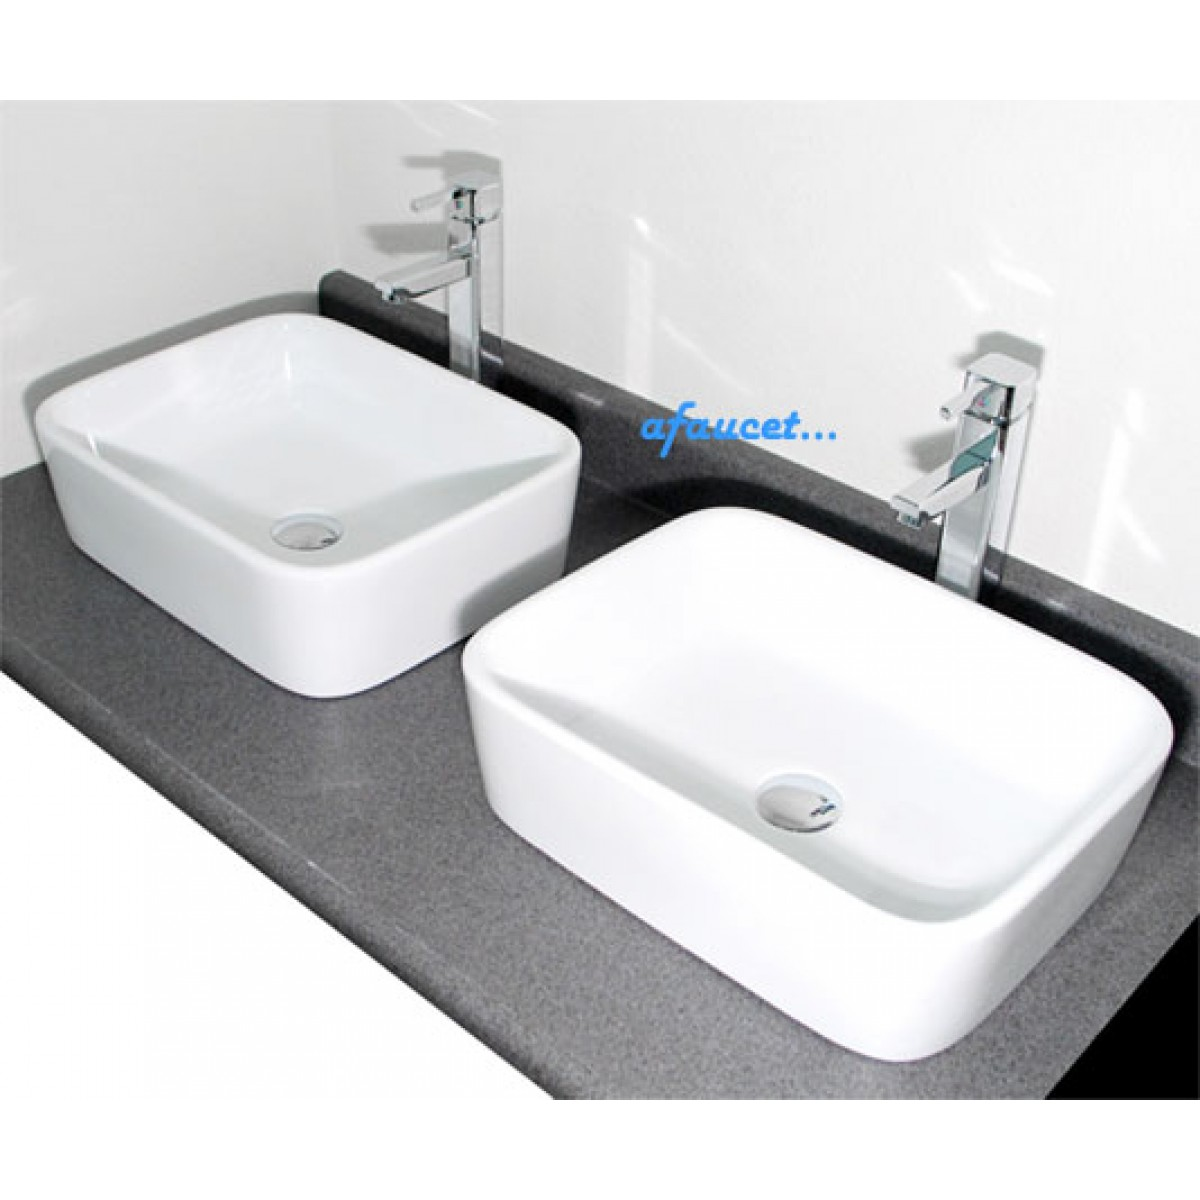 Rectangular White Porcelain Ceramic Countertop Bathroom